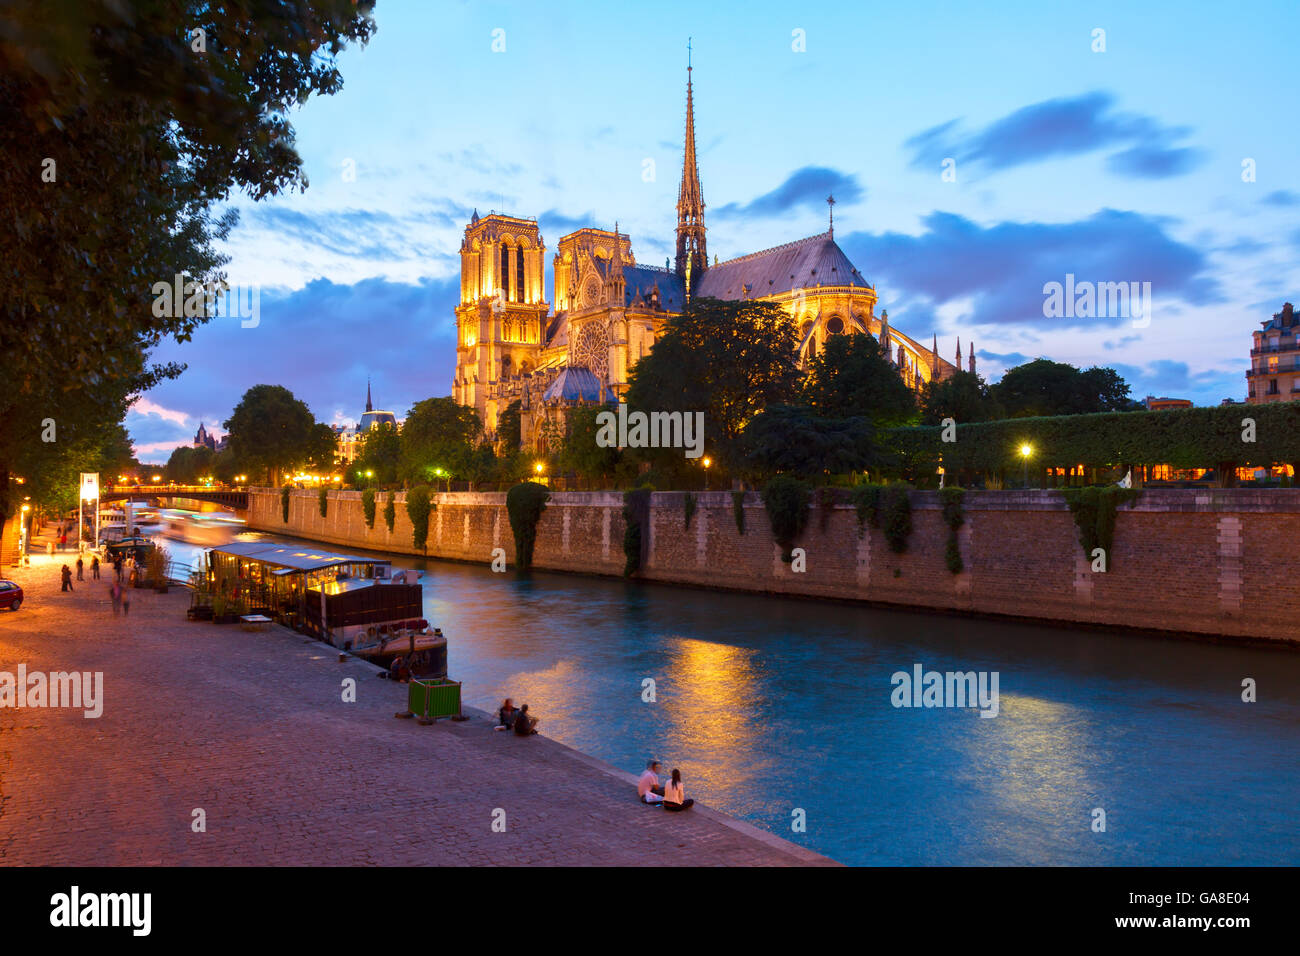 Notre Dame cathedral, Paris France - Stock Image